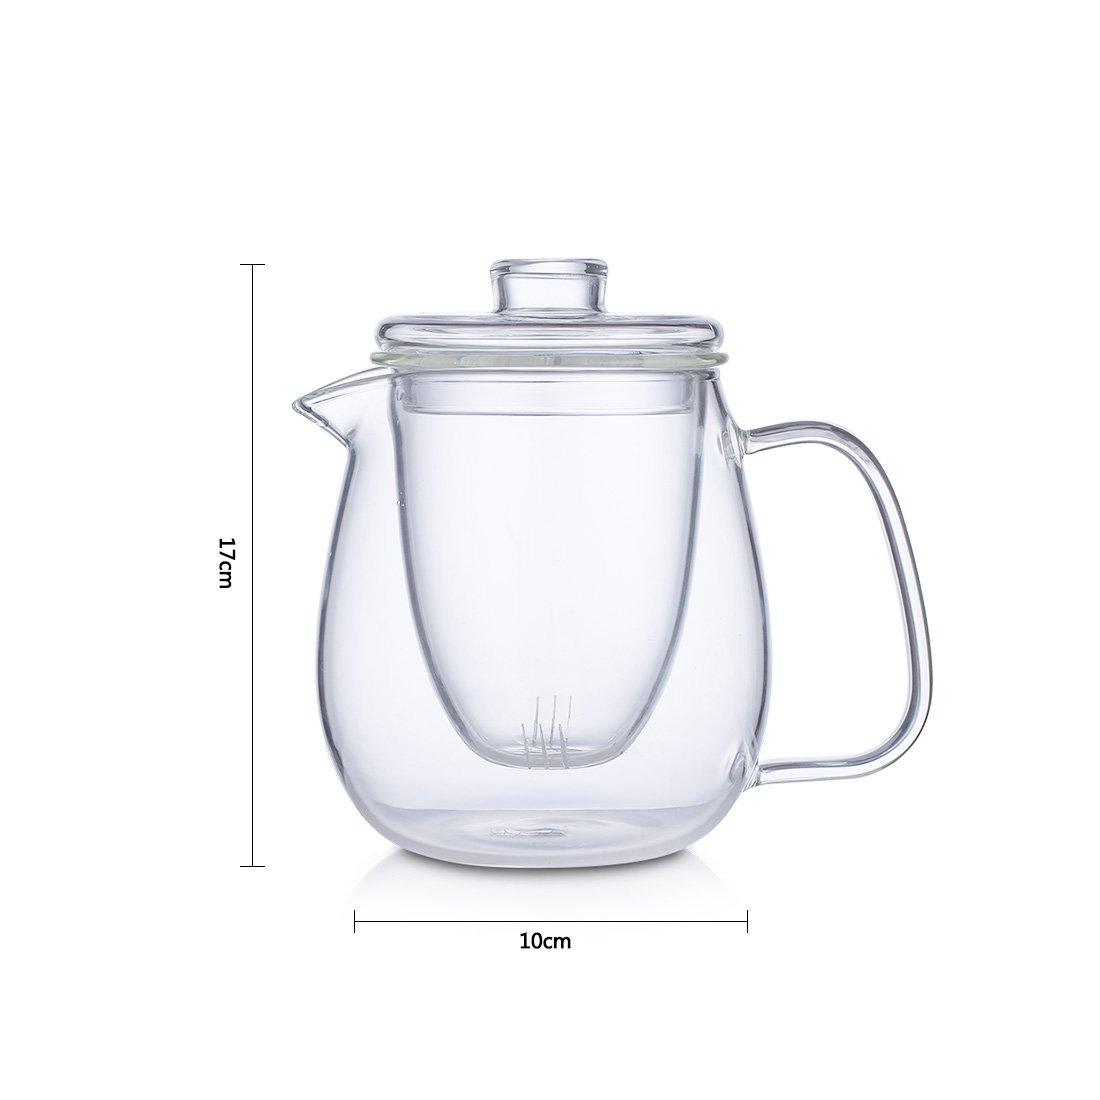 oneisall Glass Pitcher With Lid & Infuser - Borosilicate Glass Carafe 40oz/1200ml BPA-FREE Heat-resistant,Perfect For Hot&Cold Water,Tea,Juice,milk DHTGYBL581 (1200ML) by oneisall (Image #4)